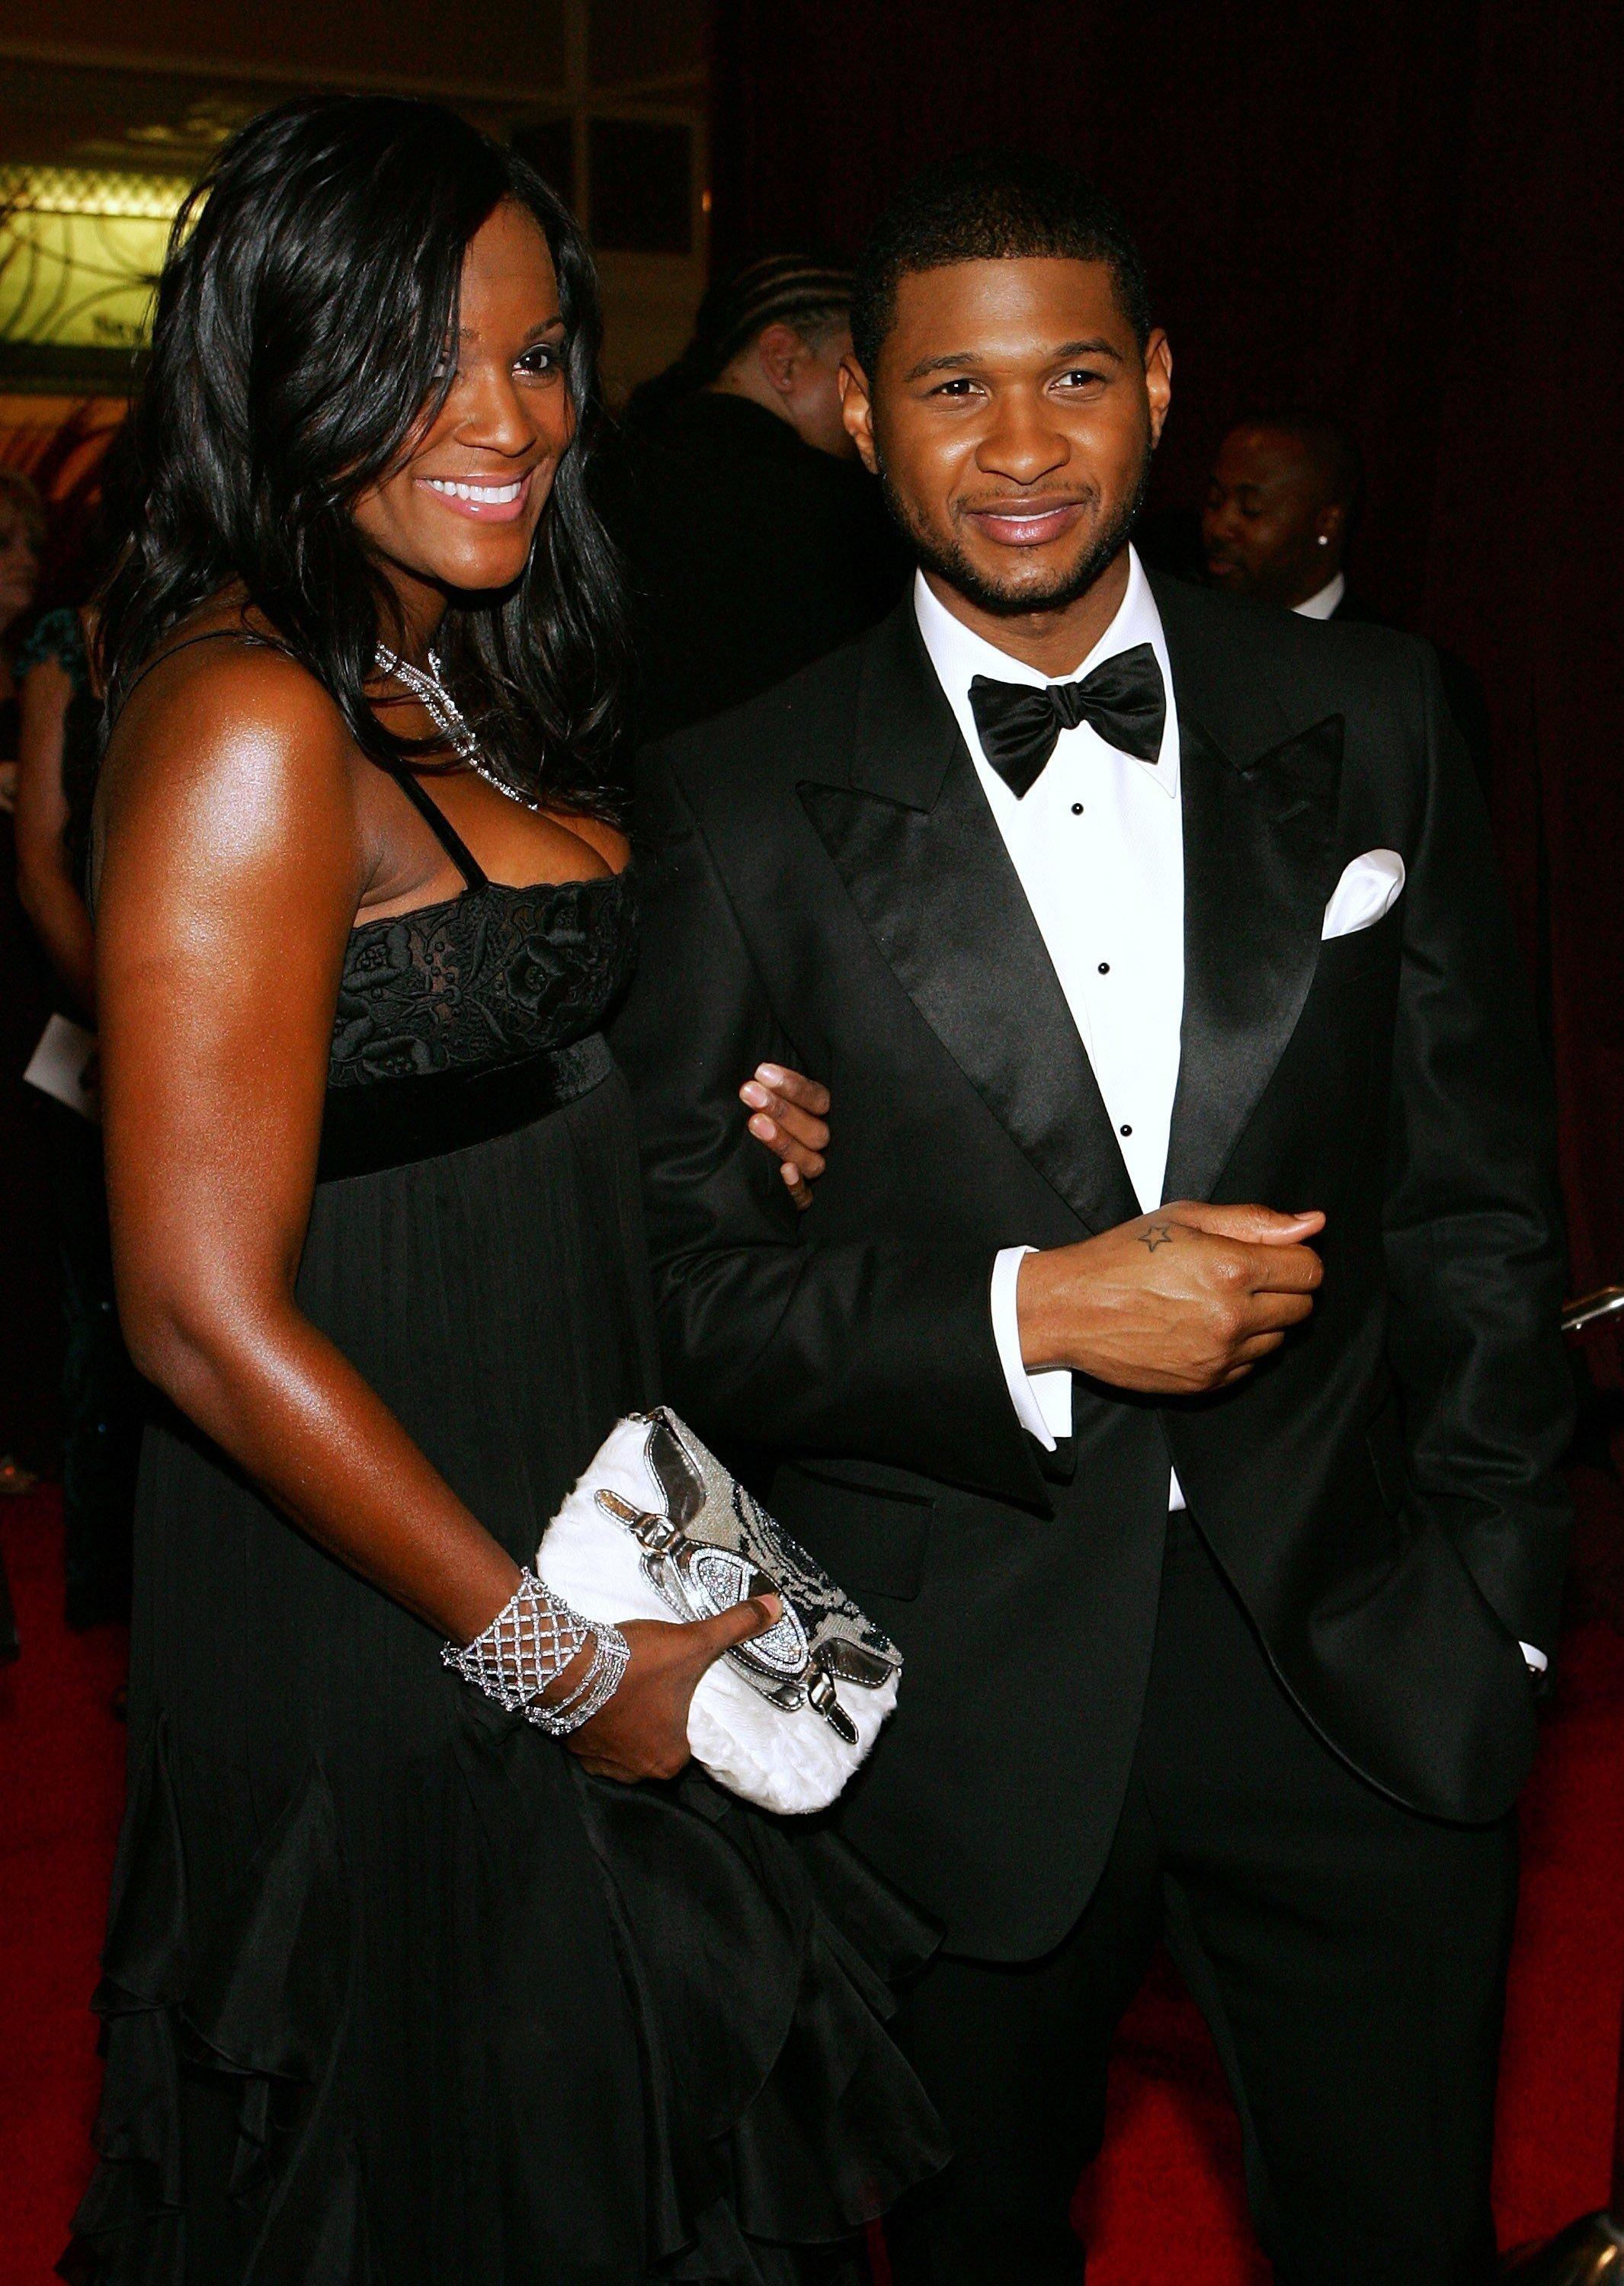 Usher Raymond and Tameka Foster attend the 15th annual Trumpet Awards at the Bellagio on January 22, 2007. | Source: Getty Images